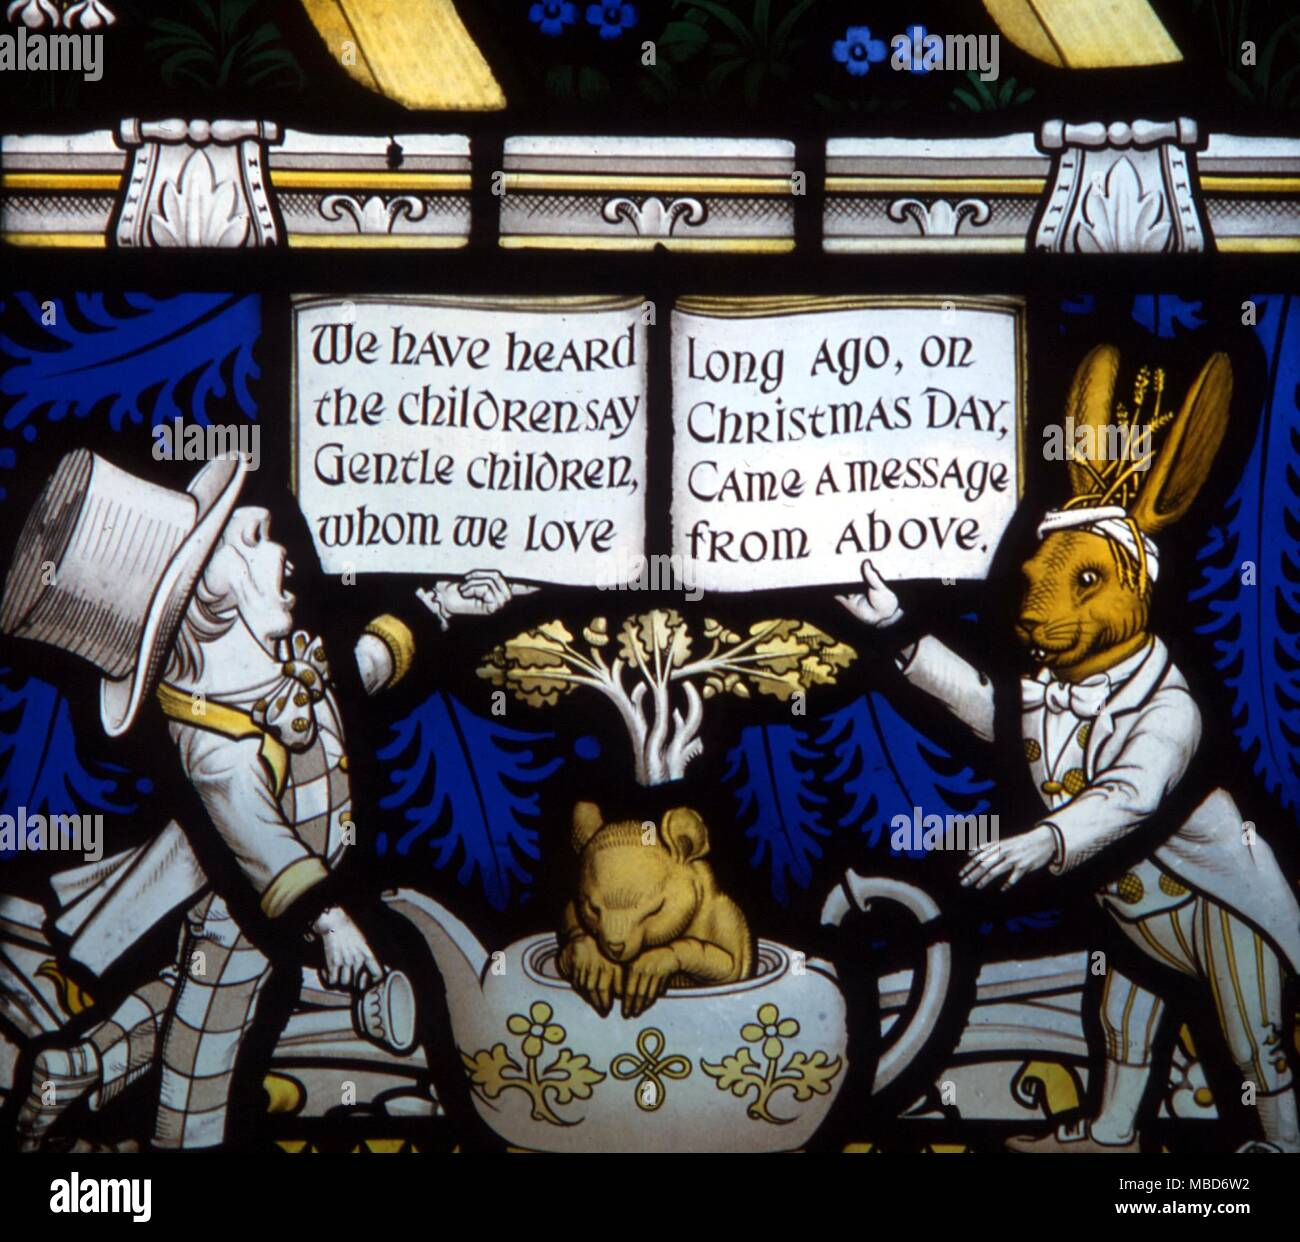 Myths - Daresbury - The Lewis Carroll memorial window at Daresbury Parish Church was designed by Geoffrey Webb, and dedicated in 1934.  The Mad Hatter, the Dormouse and the March Hare. - We have heard the children say, Gentle children whom we love, Long ago, on Christmas Day, Came a message from above. - Stock Image